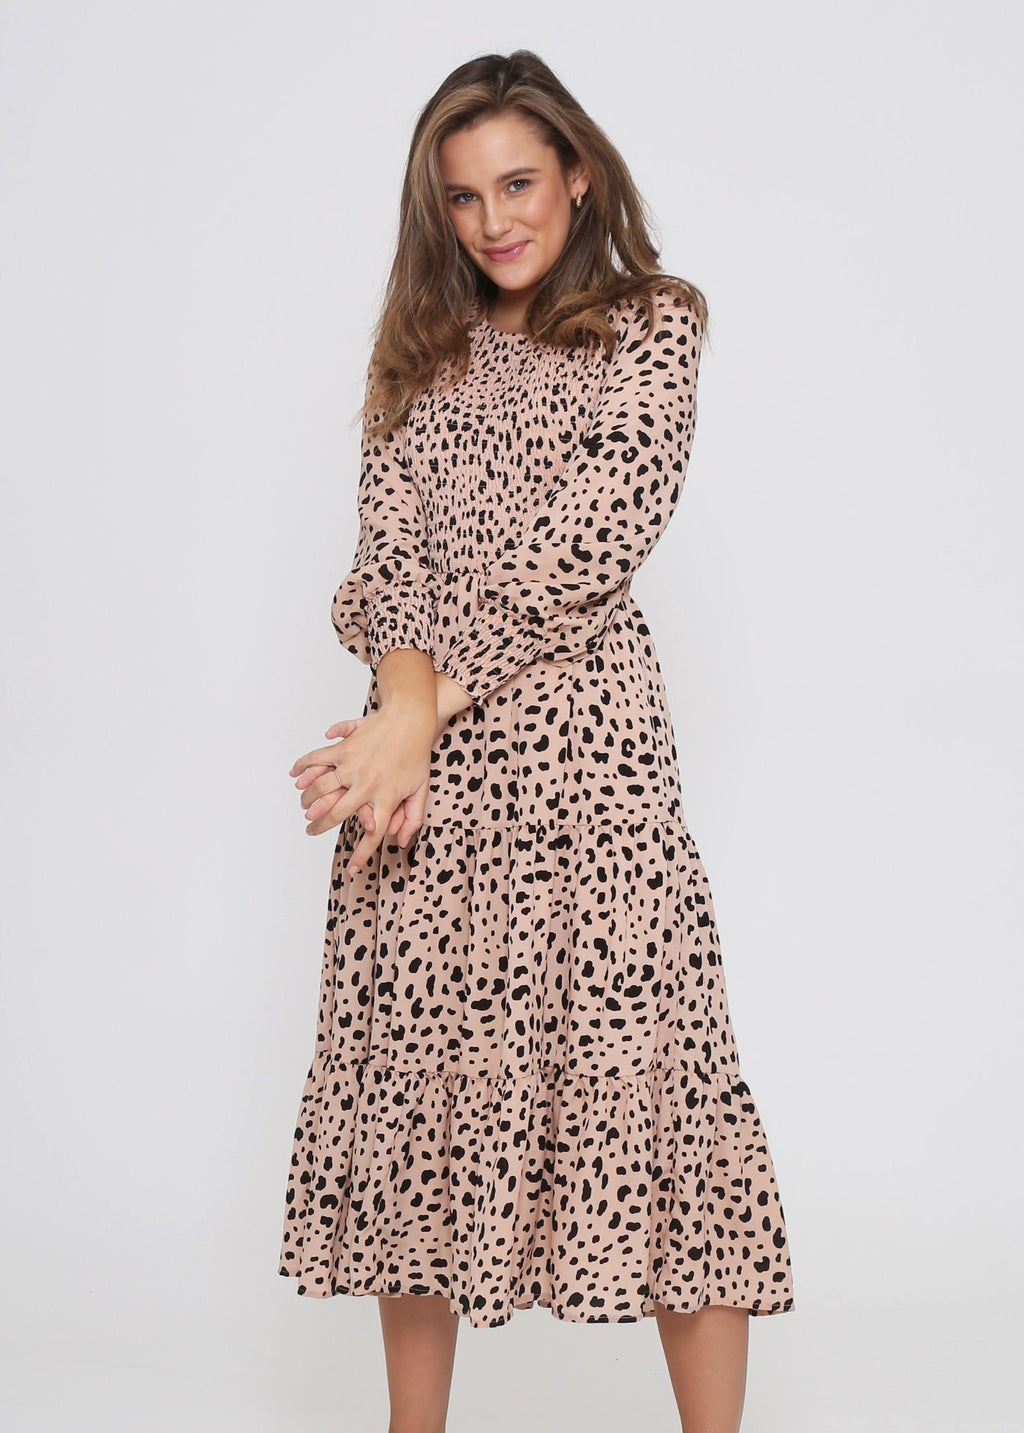 NEW - PHOENIX DRESS - PEACH CHEETAH